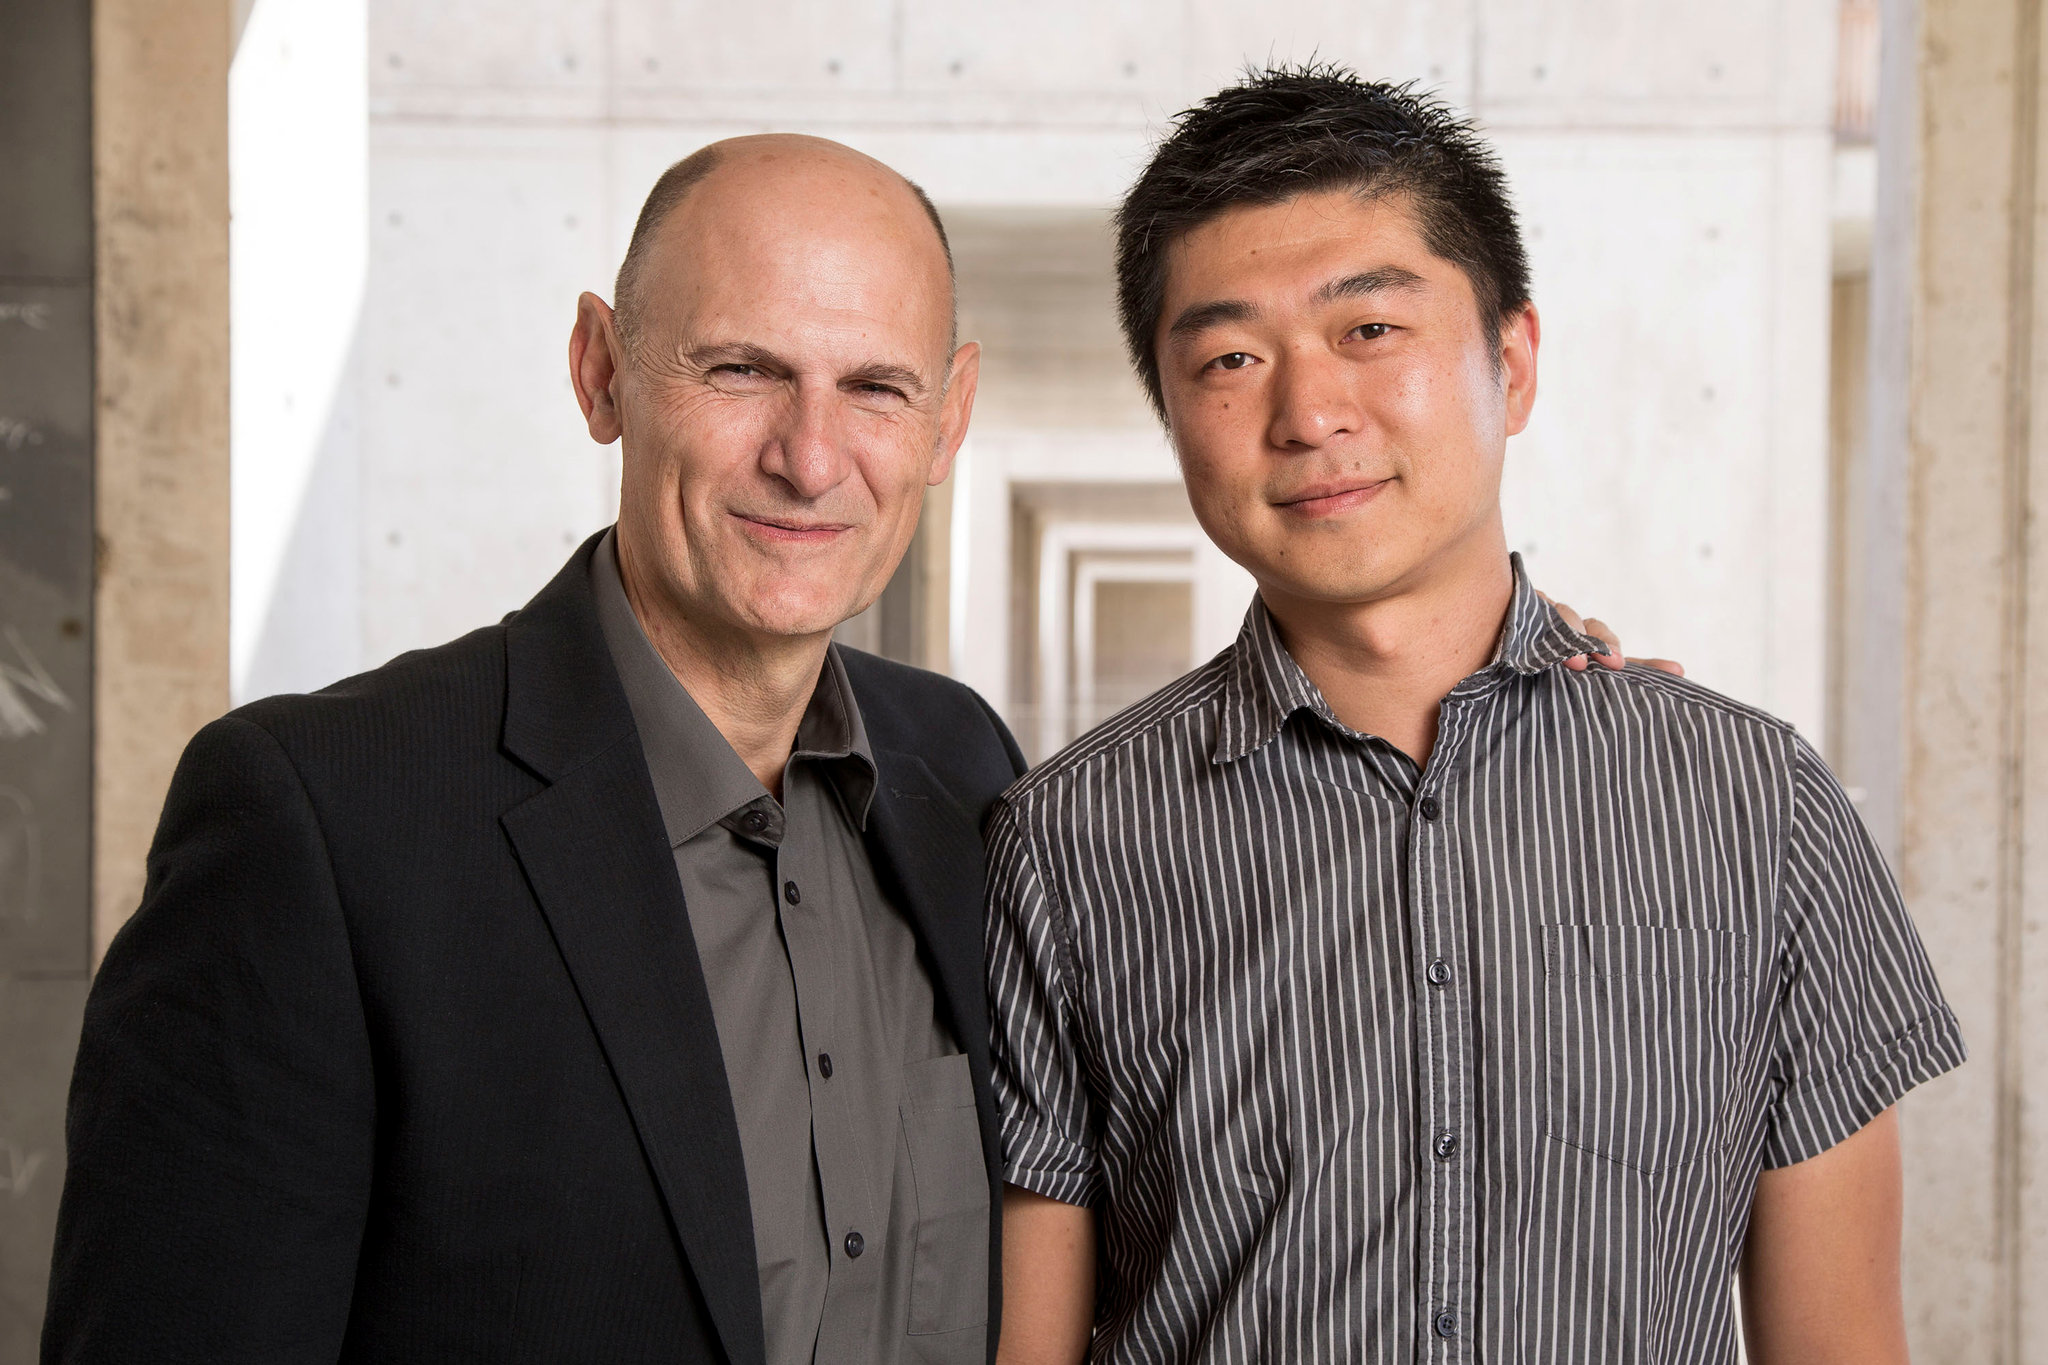 Juan Carlos Izpisua Belmonte, Professor at Salk Institute's Gene Expression Laboratory and Jun Wu, Salk staff Scientist are pictured in this handout photo obtained by Reuters, August 2, 2017. Salk Institute/Handout via REUTERS